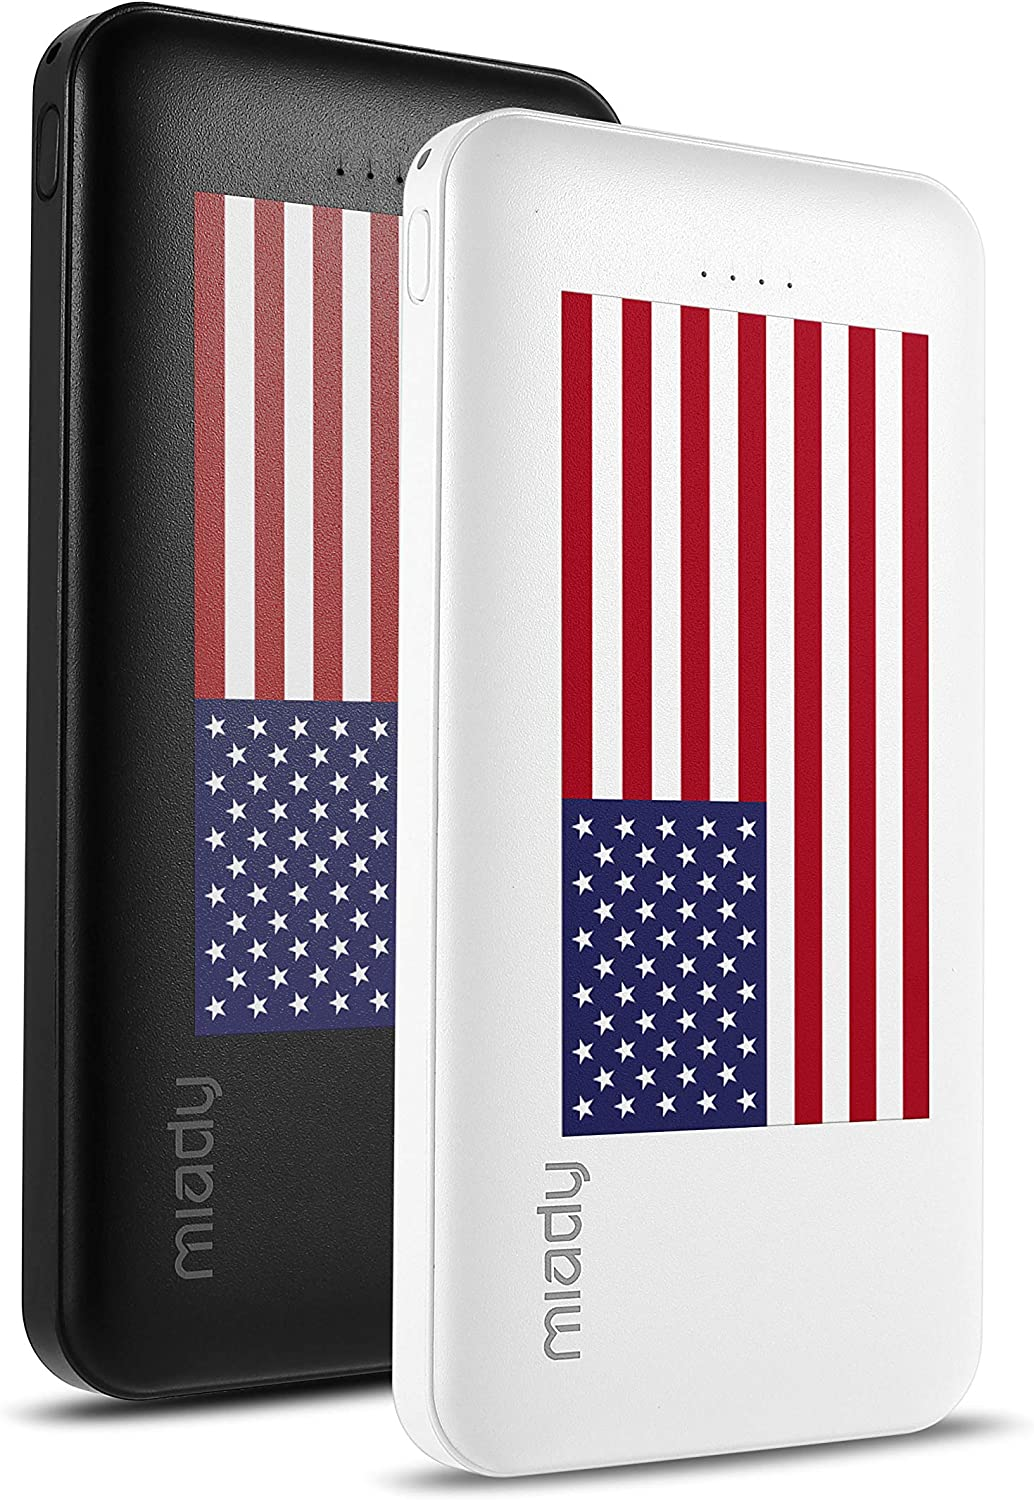 2-Pack Miady 10000mAh Dual USB Portable Charger, Fast Charging Power Bank with USB C Input, Backup Charger for iPhone X, Galaxy S9, Pixel 3 and etc (Flag Edition) …